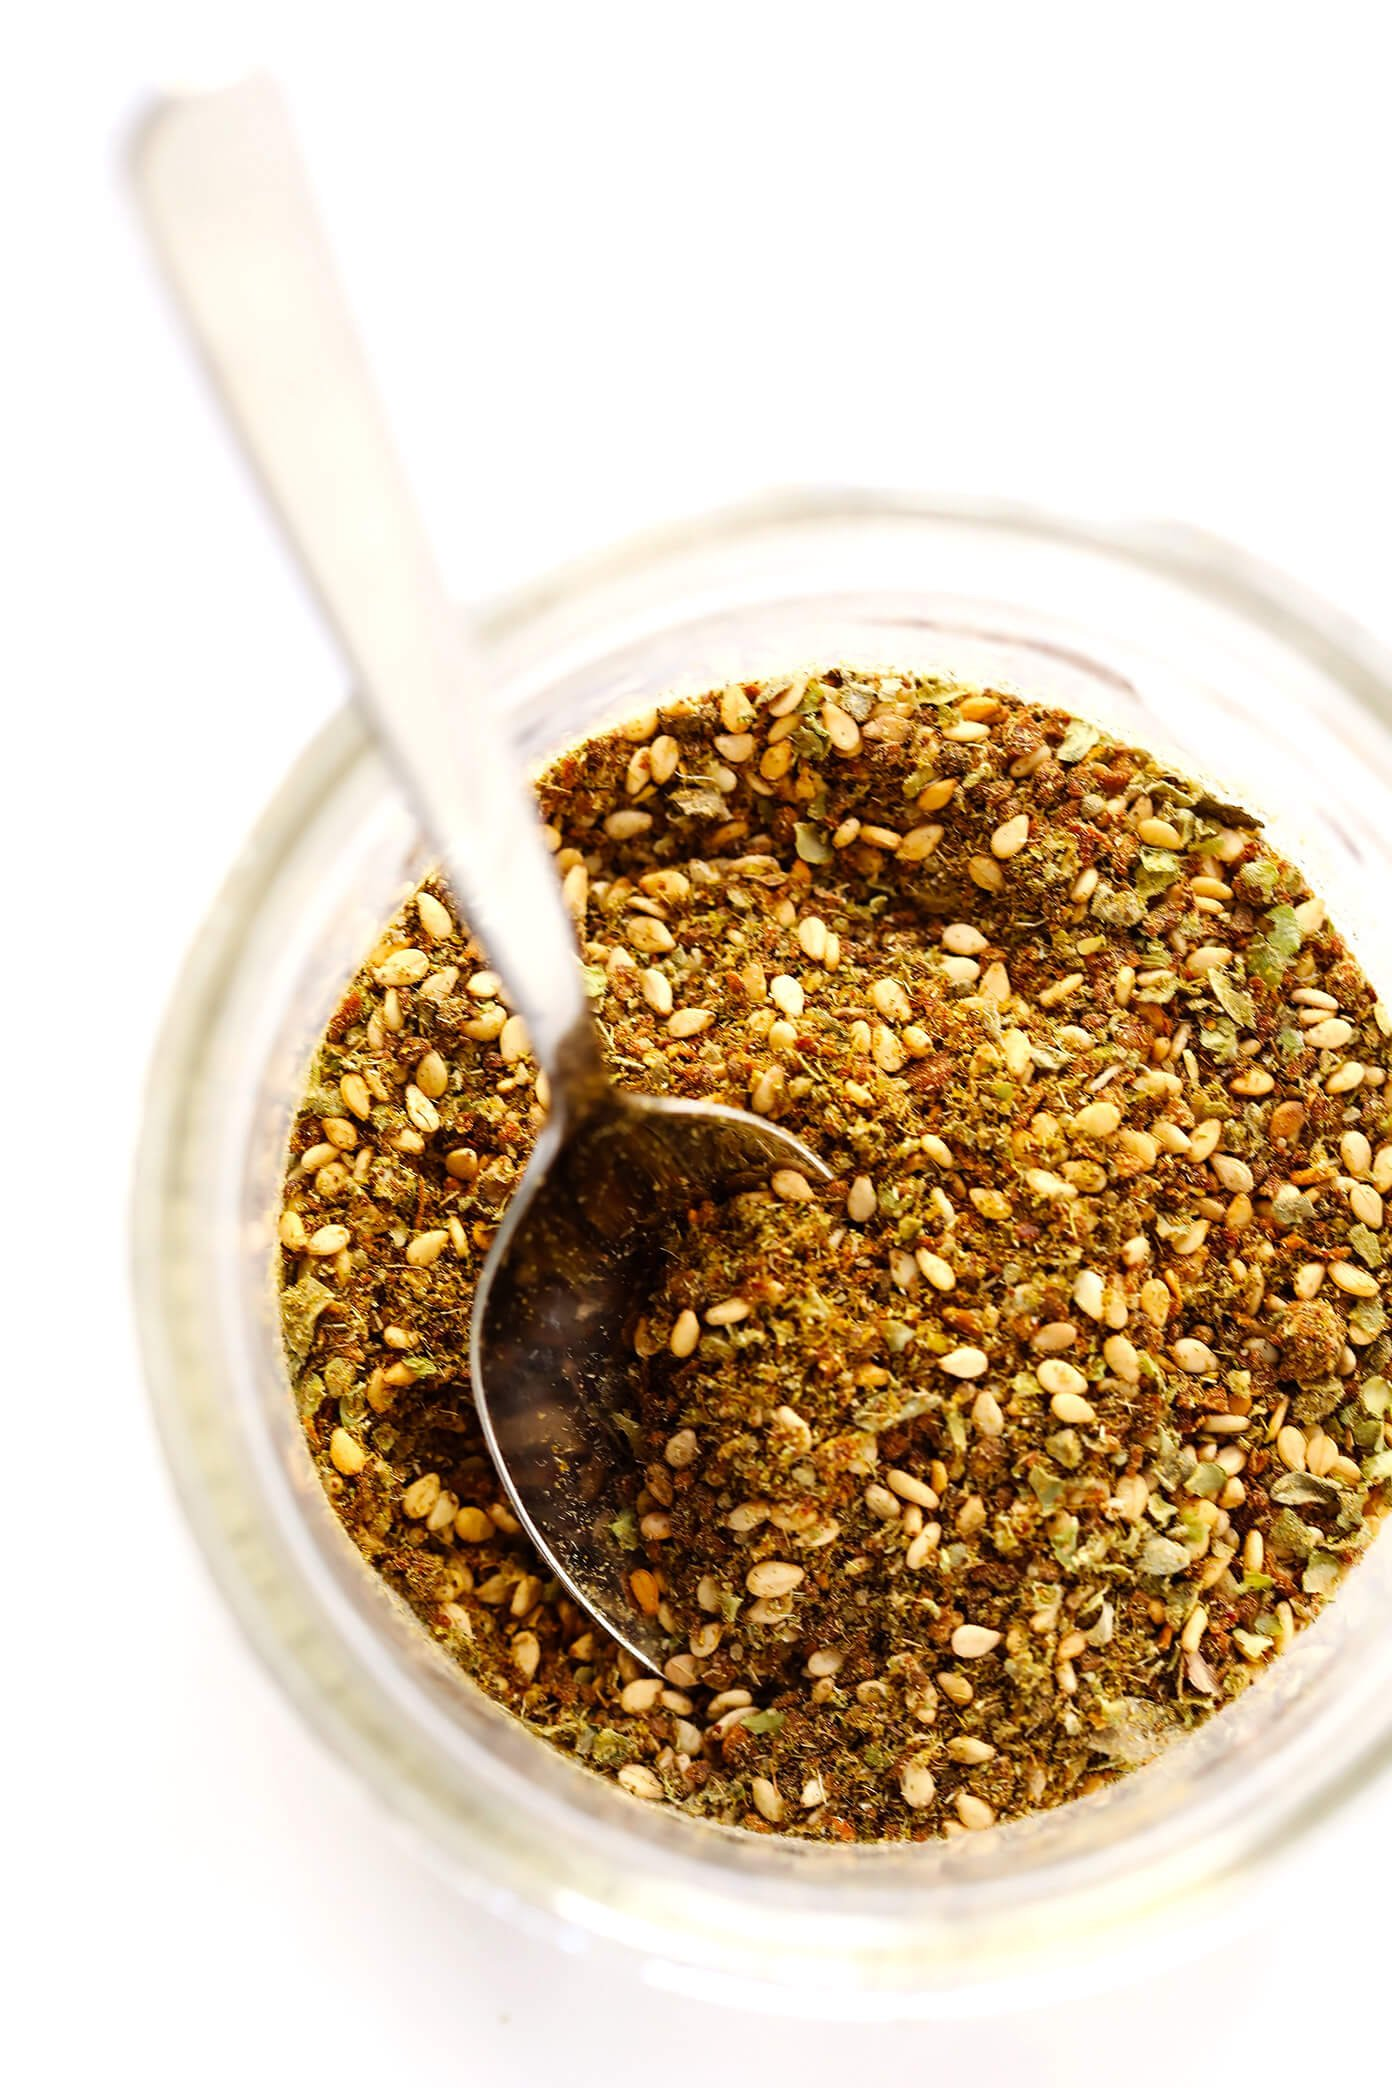 Homemade Za'atar Seasoning Recipe